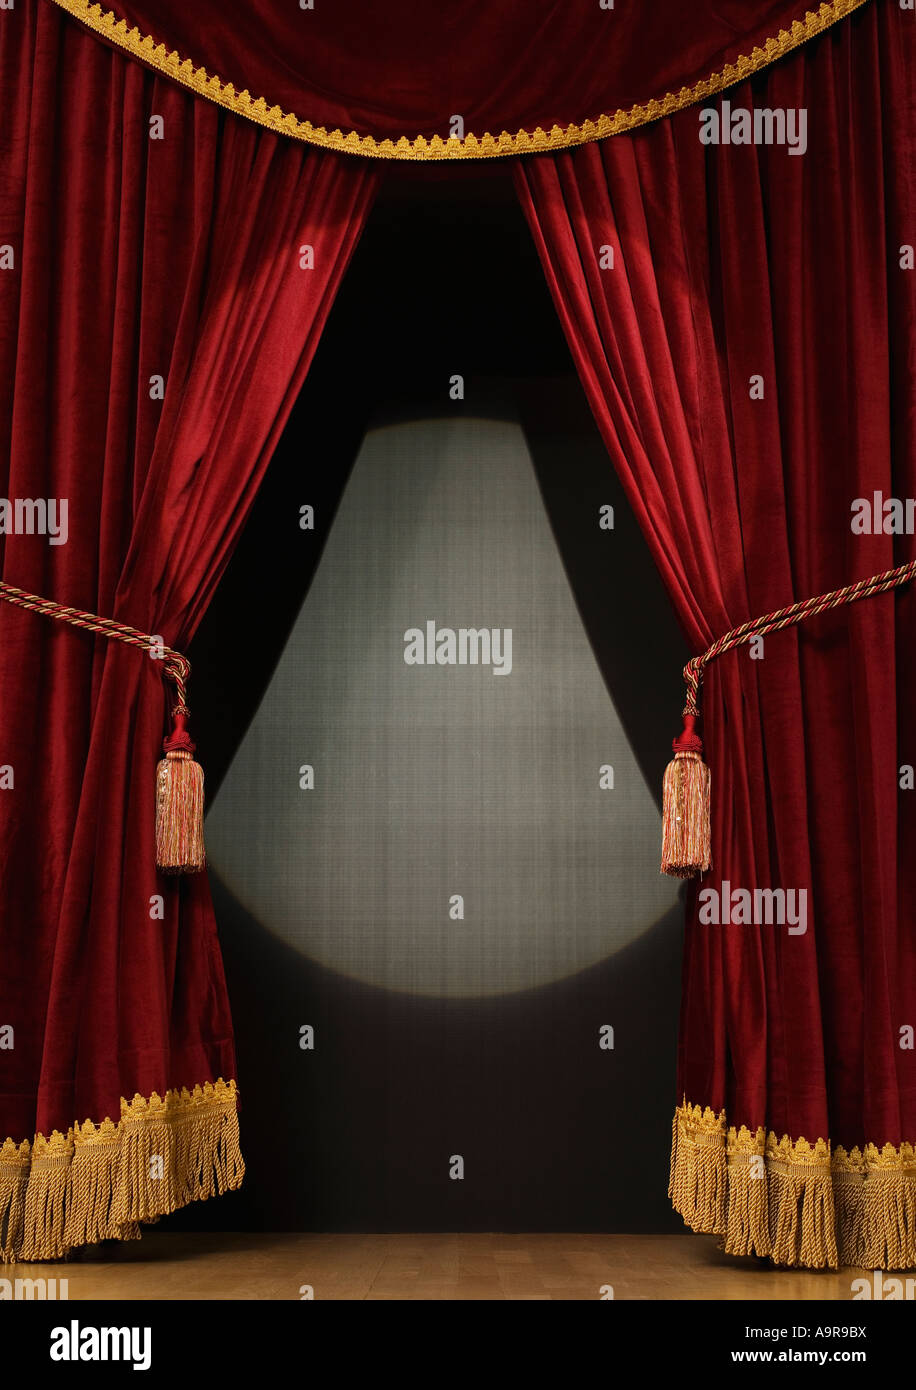 Spotlight on open stage curtains - Stock Image